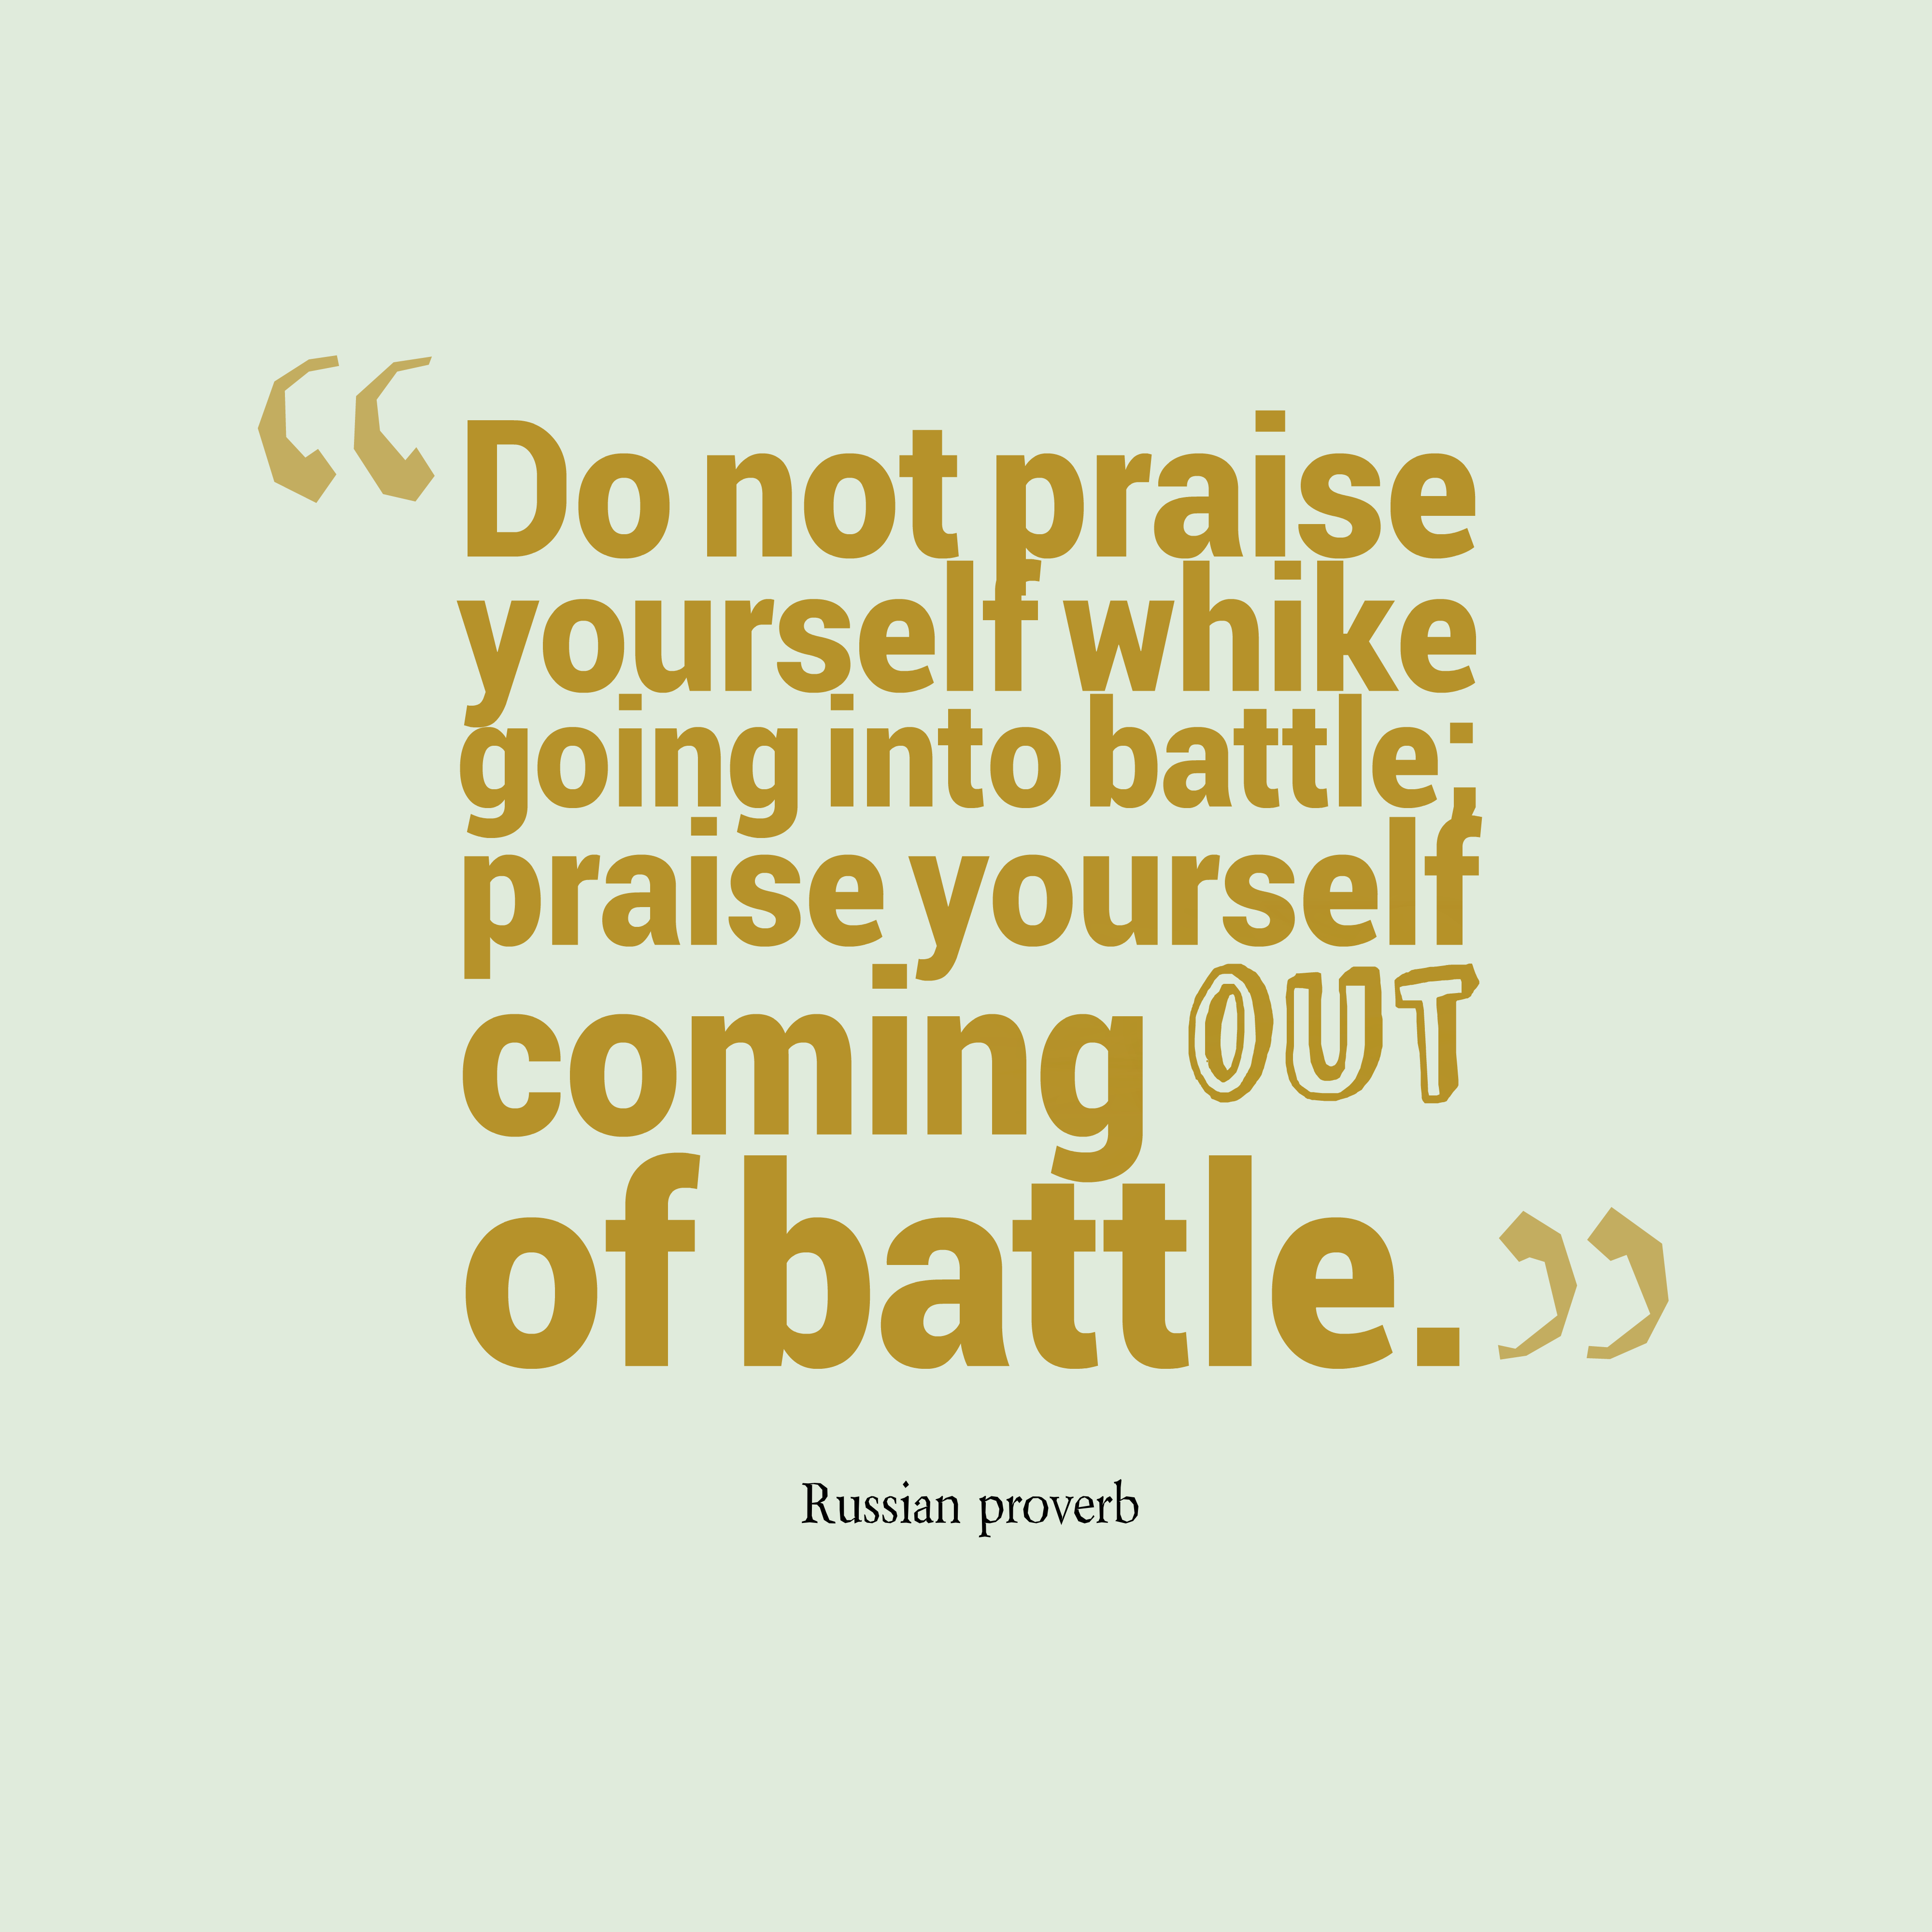 Quotes image of Do not praise yourself whike going into battle; praise yourself coming out of battle.